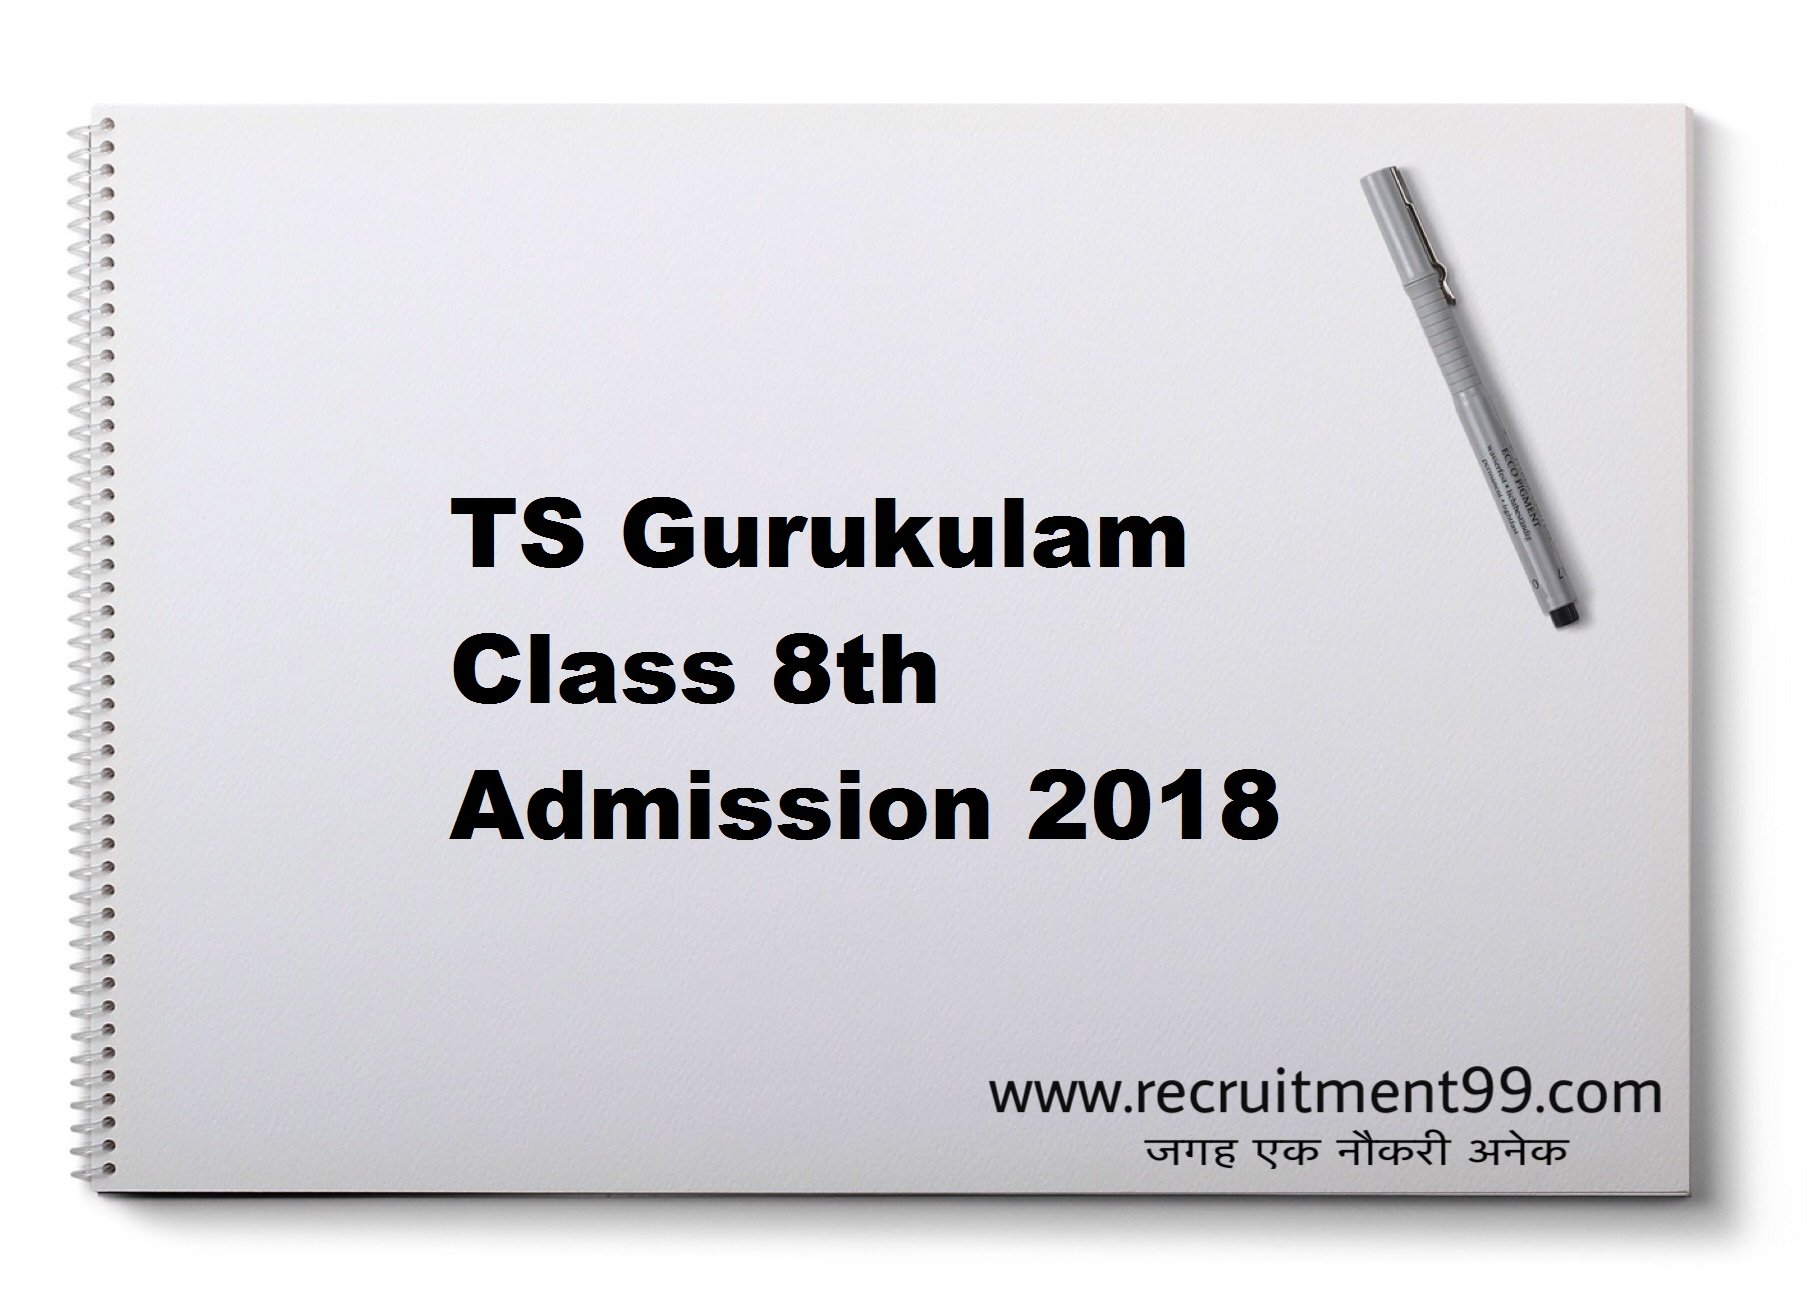 TS Gurukulam 8th Class Admission Hall Ticket Result 2018